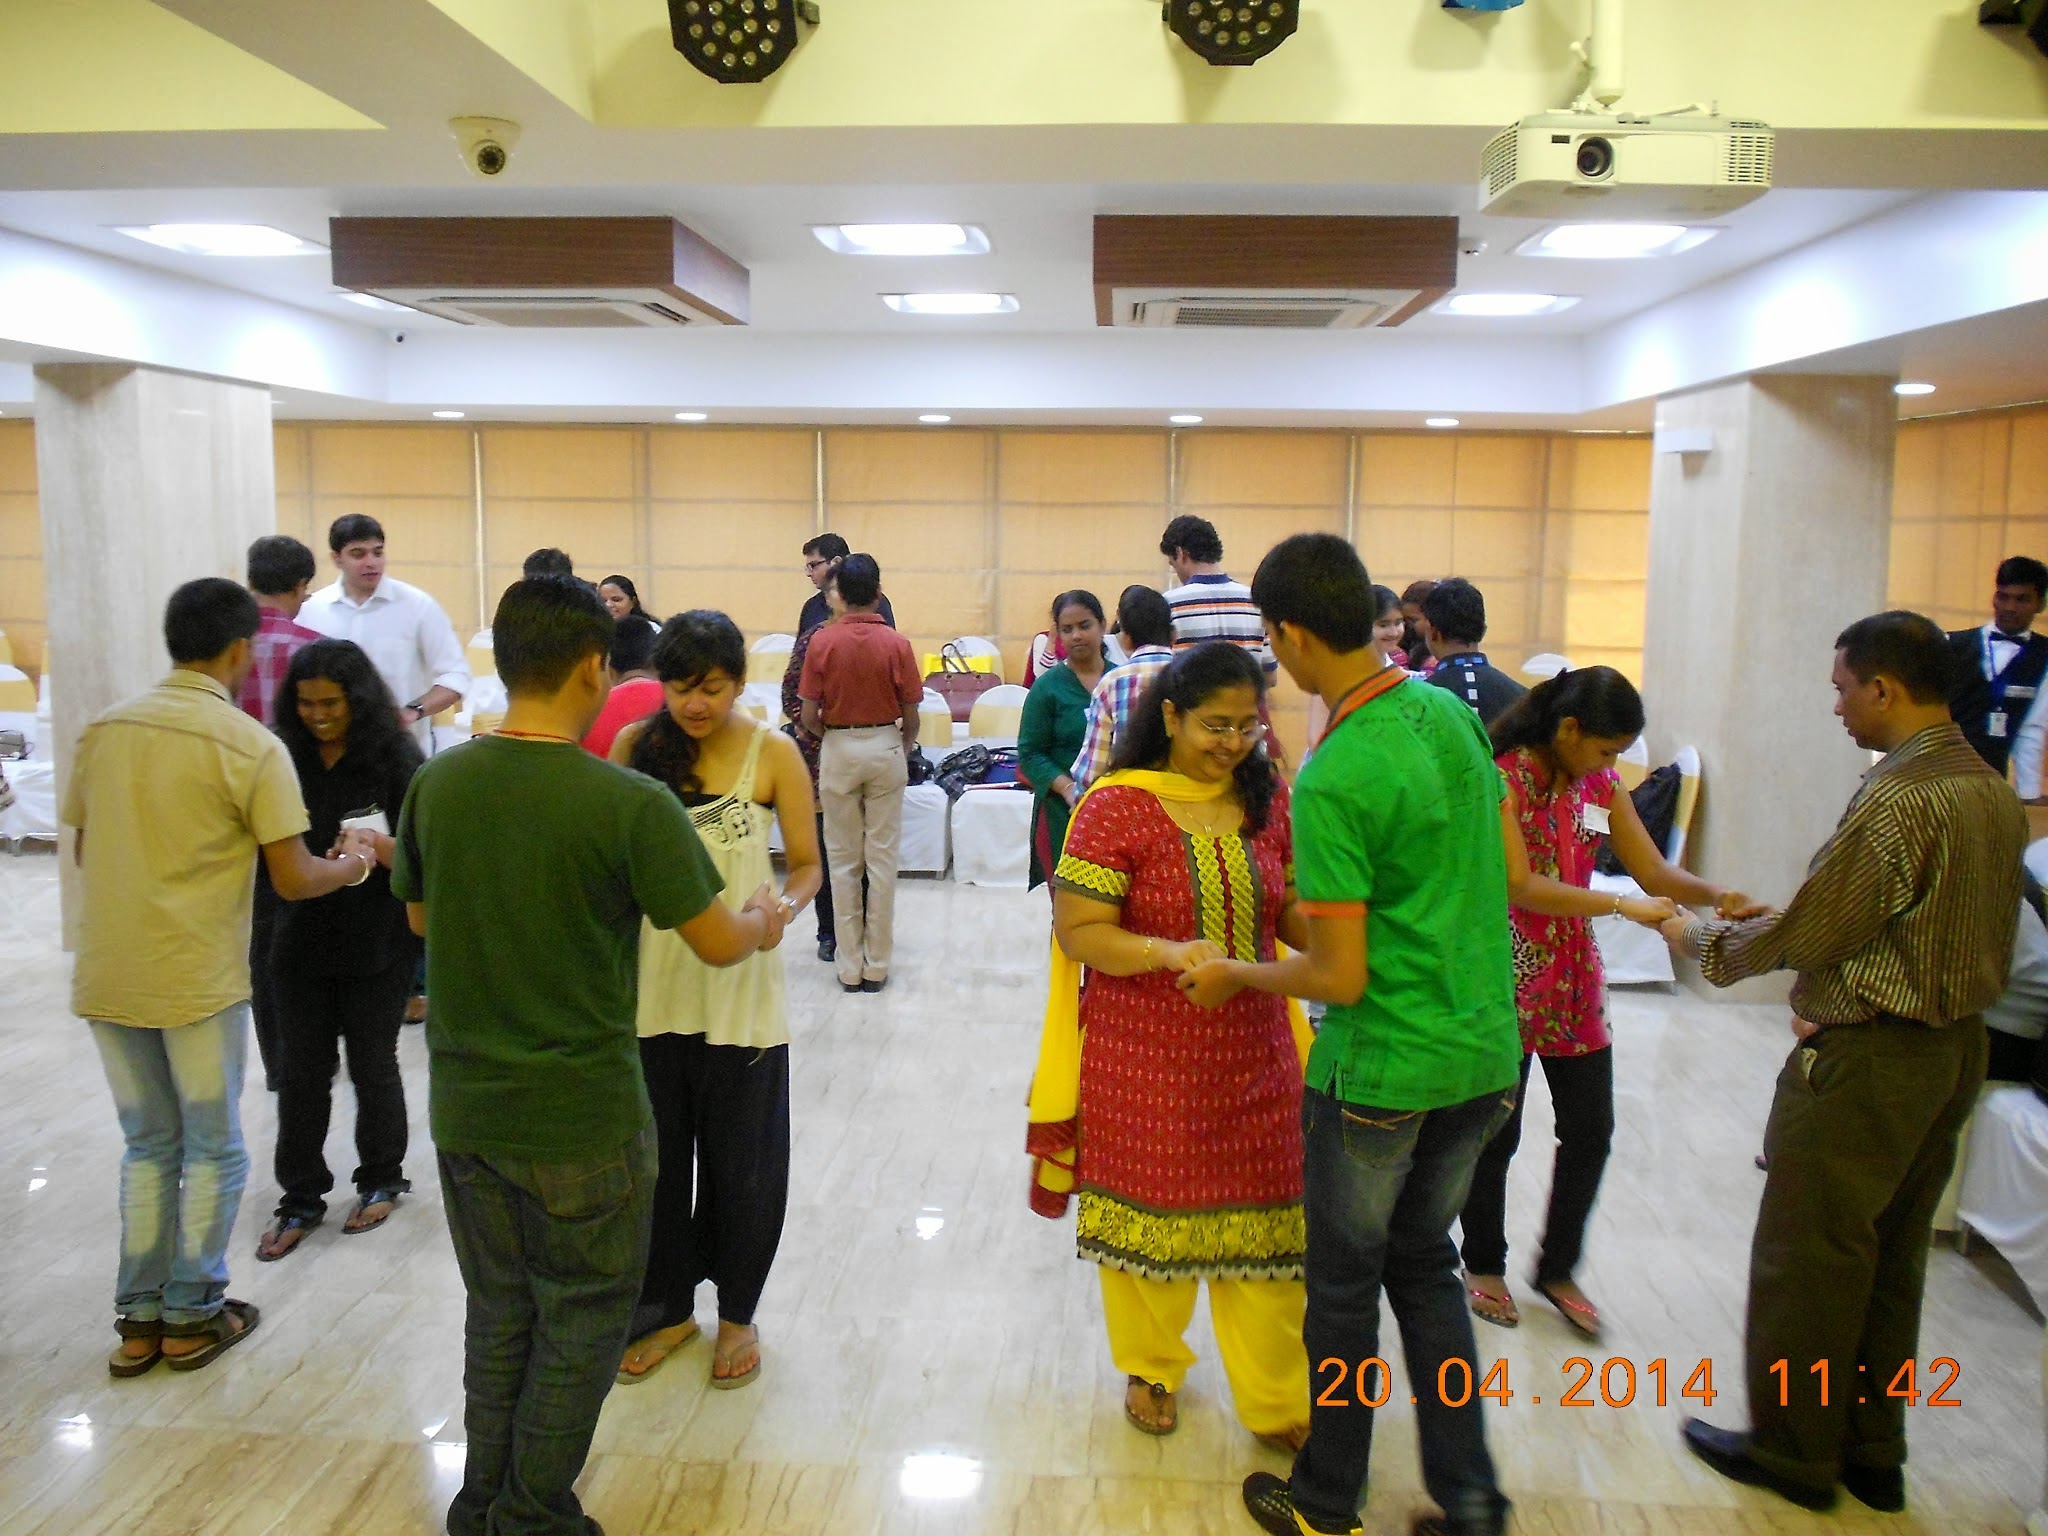 a picture of participants dancing and enjoying the workshop